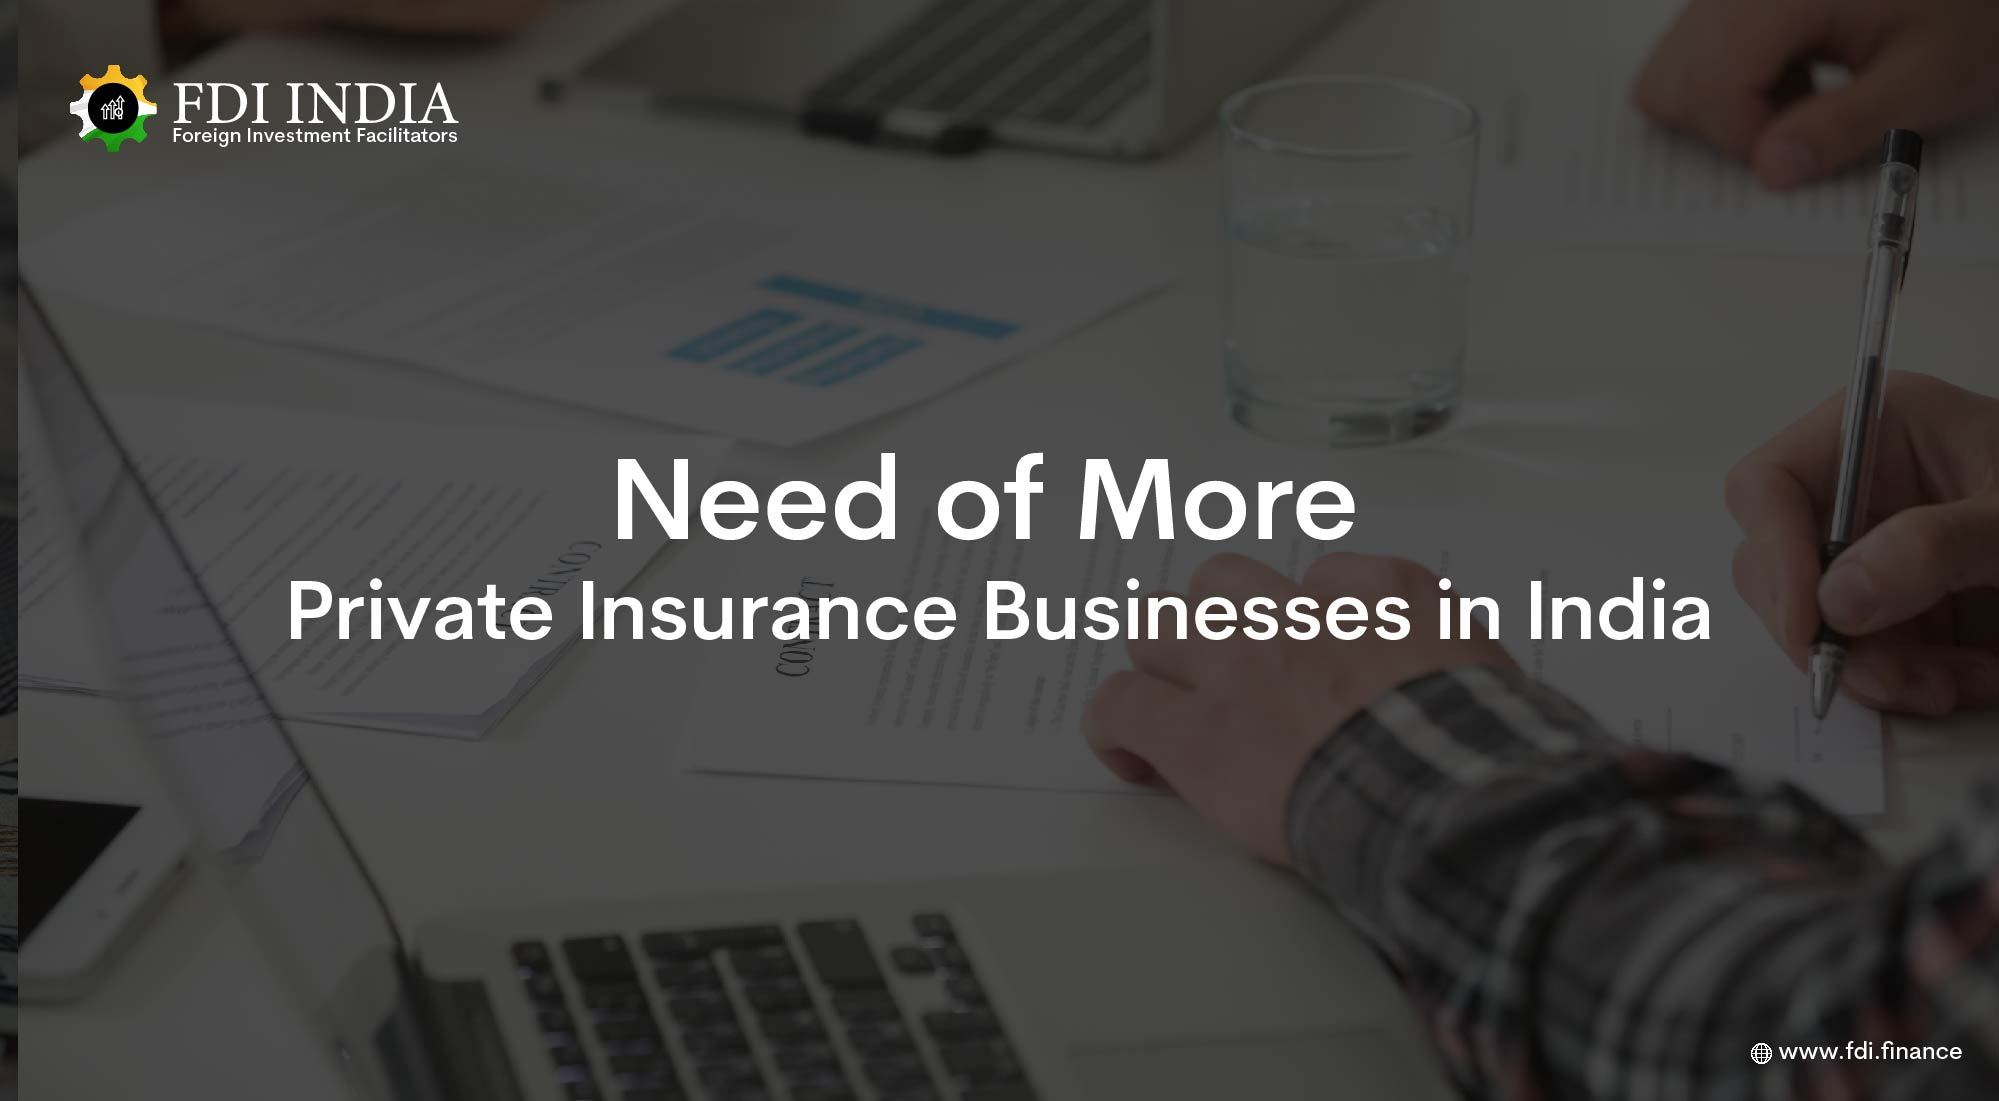 Need of More Private Insurance Businesses in India